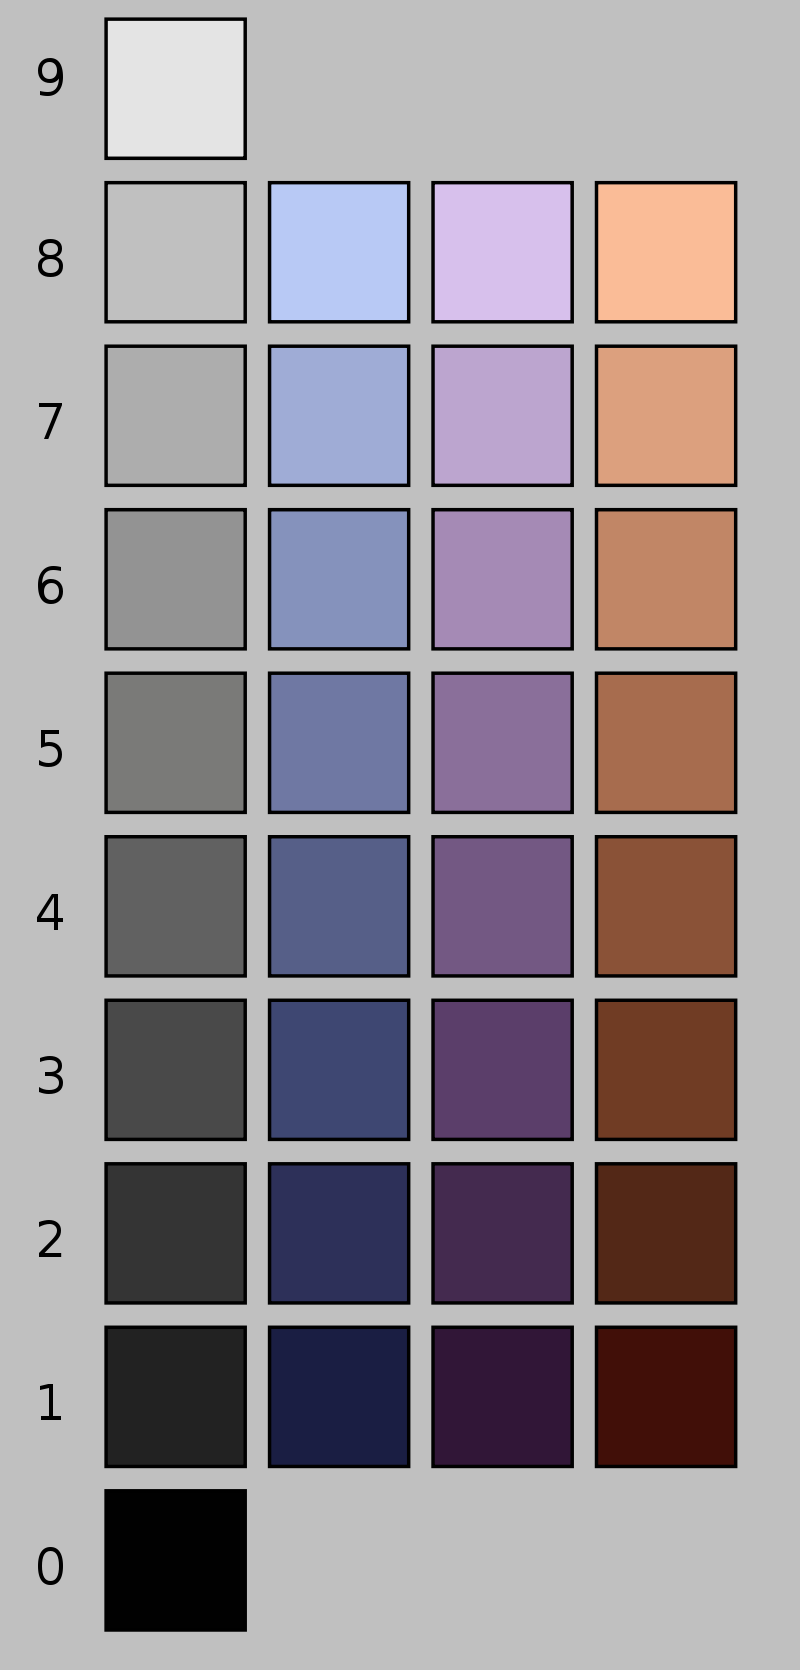 Munsell color scale, showing that multiple colors can have the same lightness value.